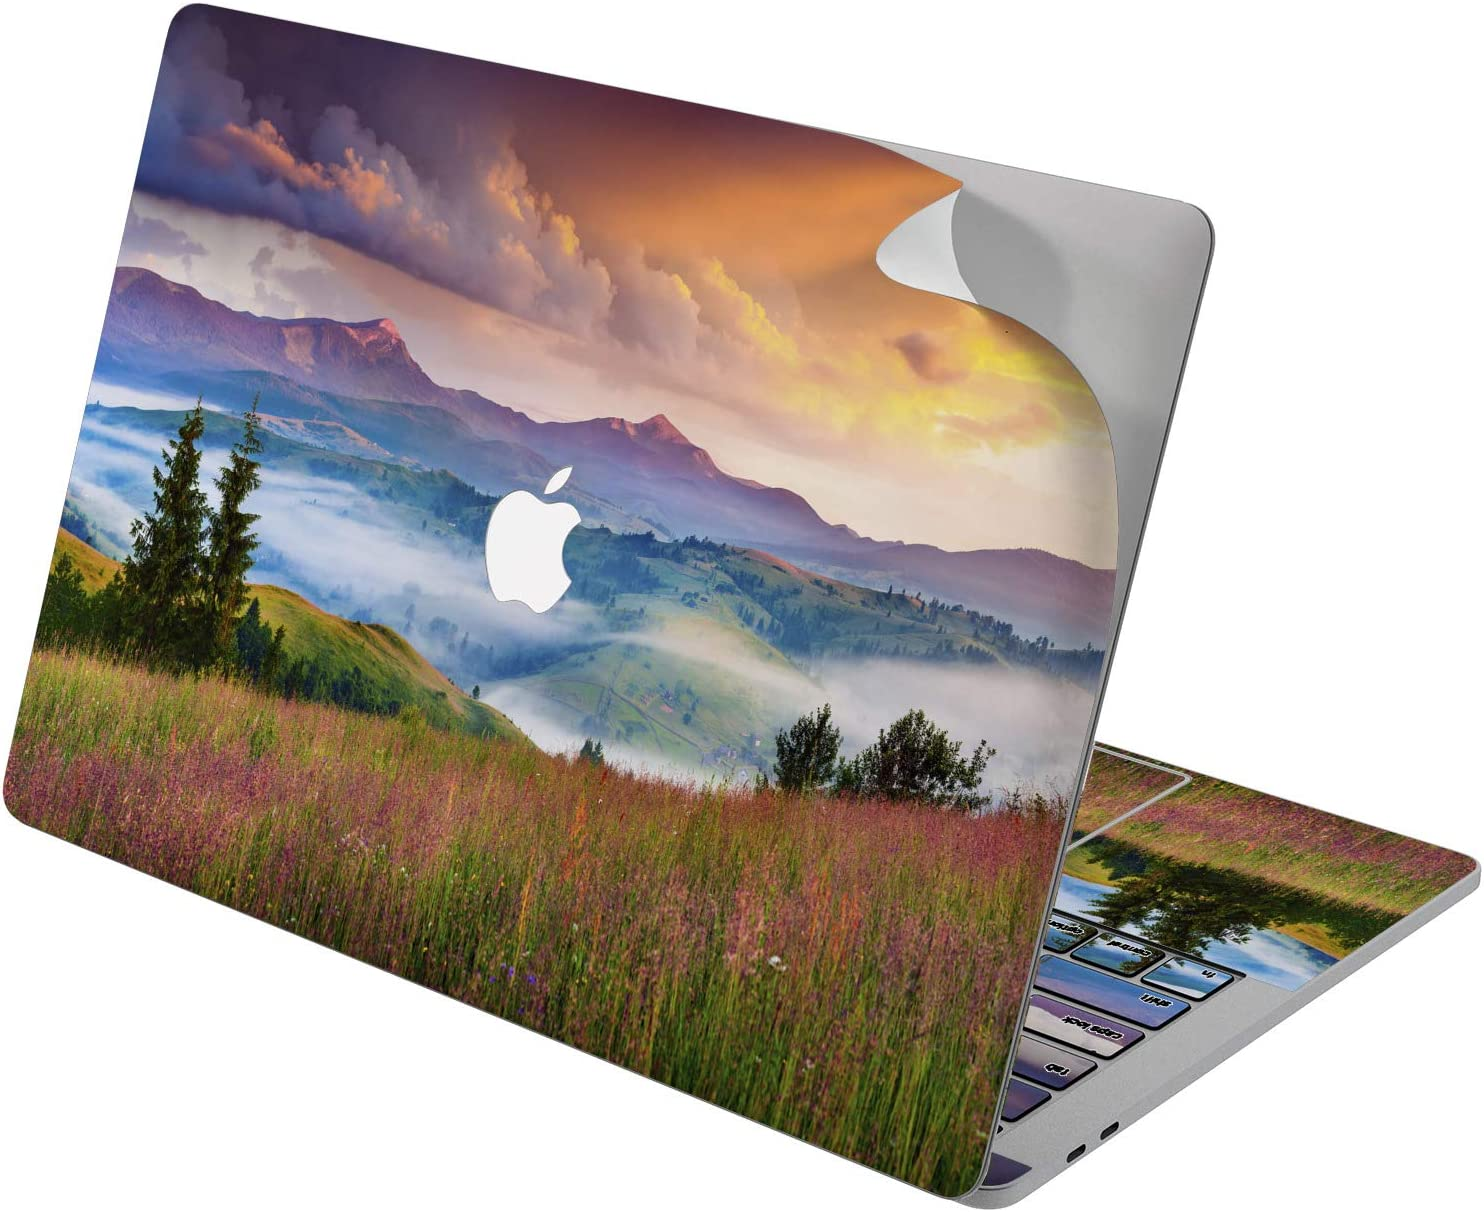 "Cavka Vinyl Decal Skin for Apple MacBook Pro 13"" 2019 15"" 2018 Air 13"" 2020 Retina 2015 Mac 11"" Mac 12"" Trendy Cover Landscape Protective Nature Sunset Valley Sticker Print Design Countryside Laptop"